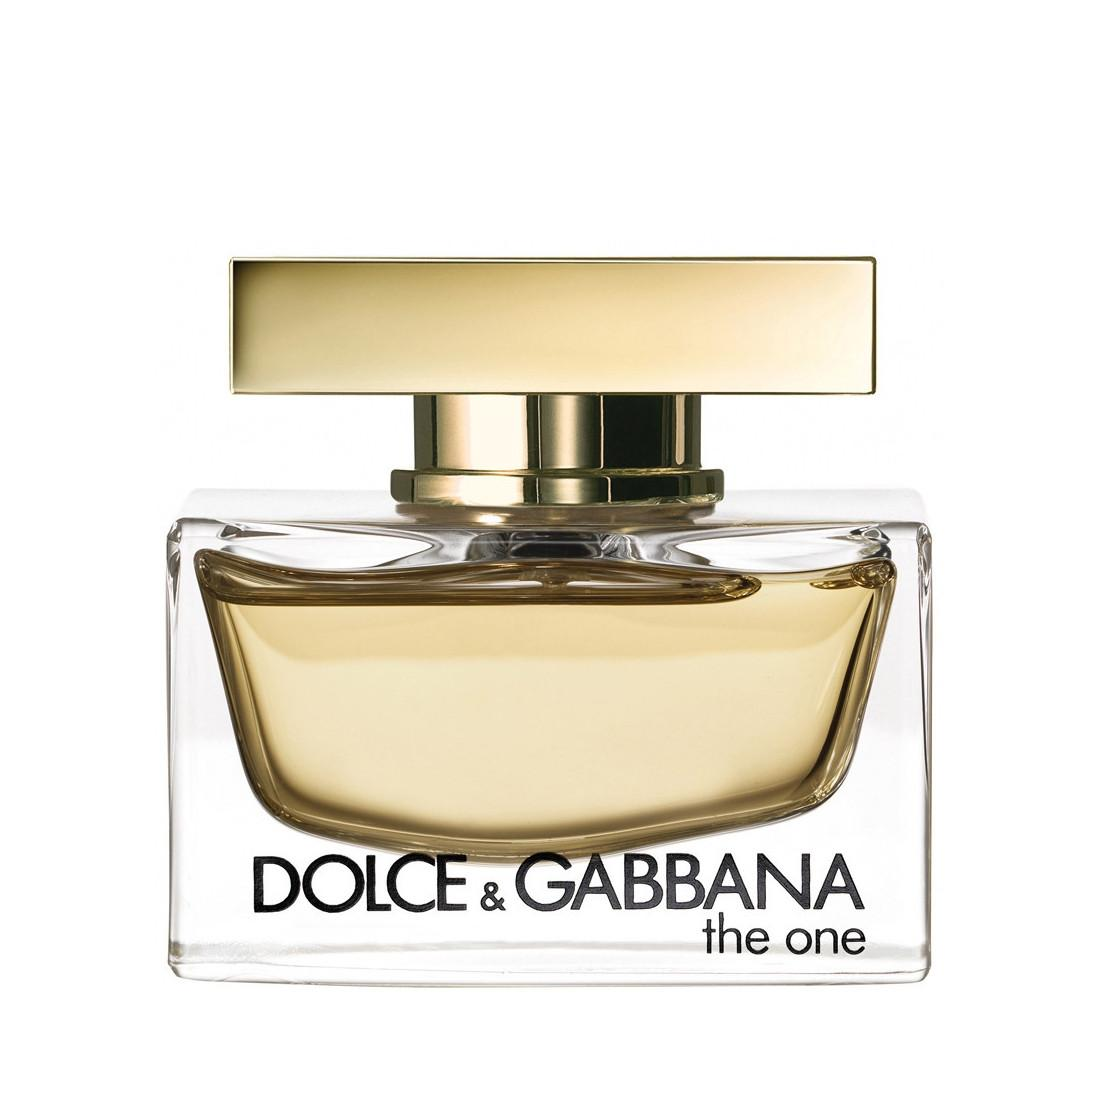 Dolce&Gabbana The One For Women Eau De Parfum 50ML